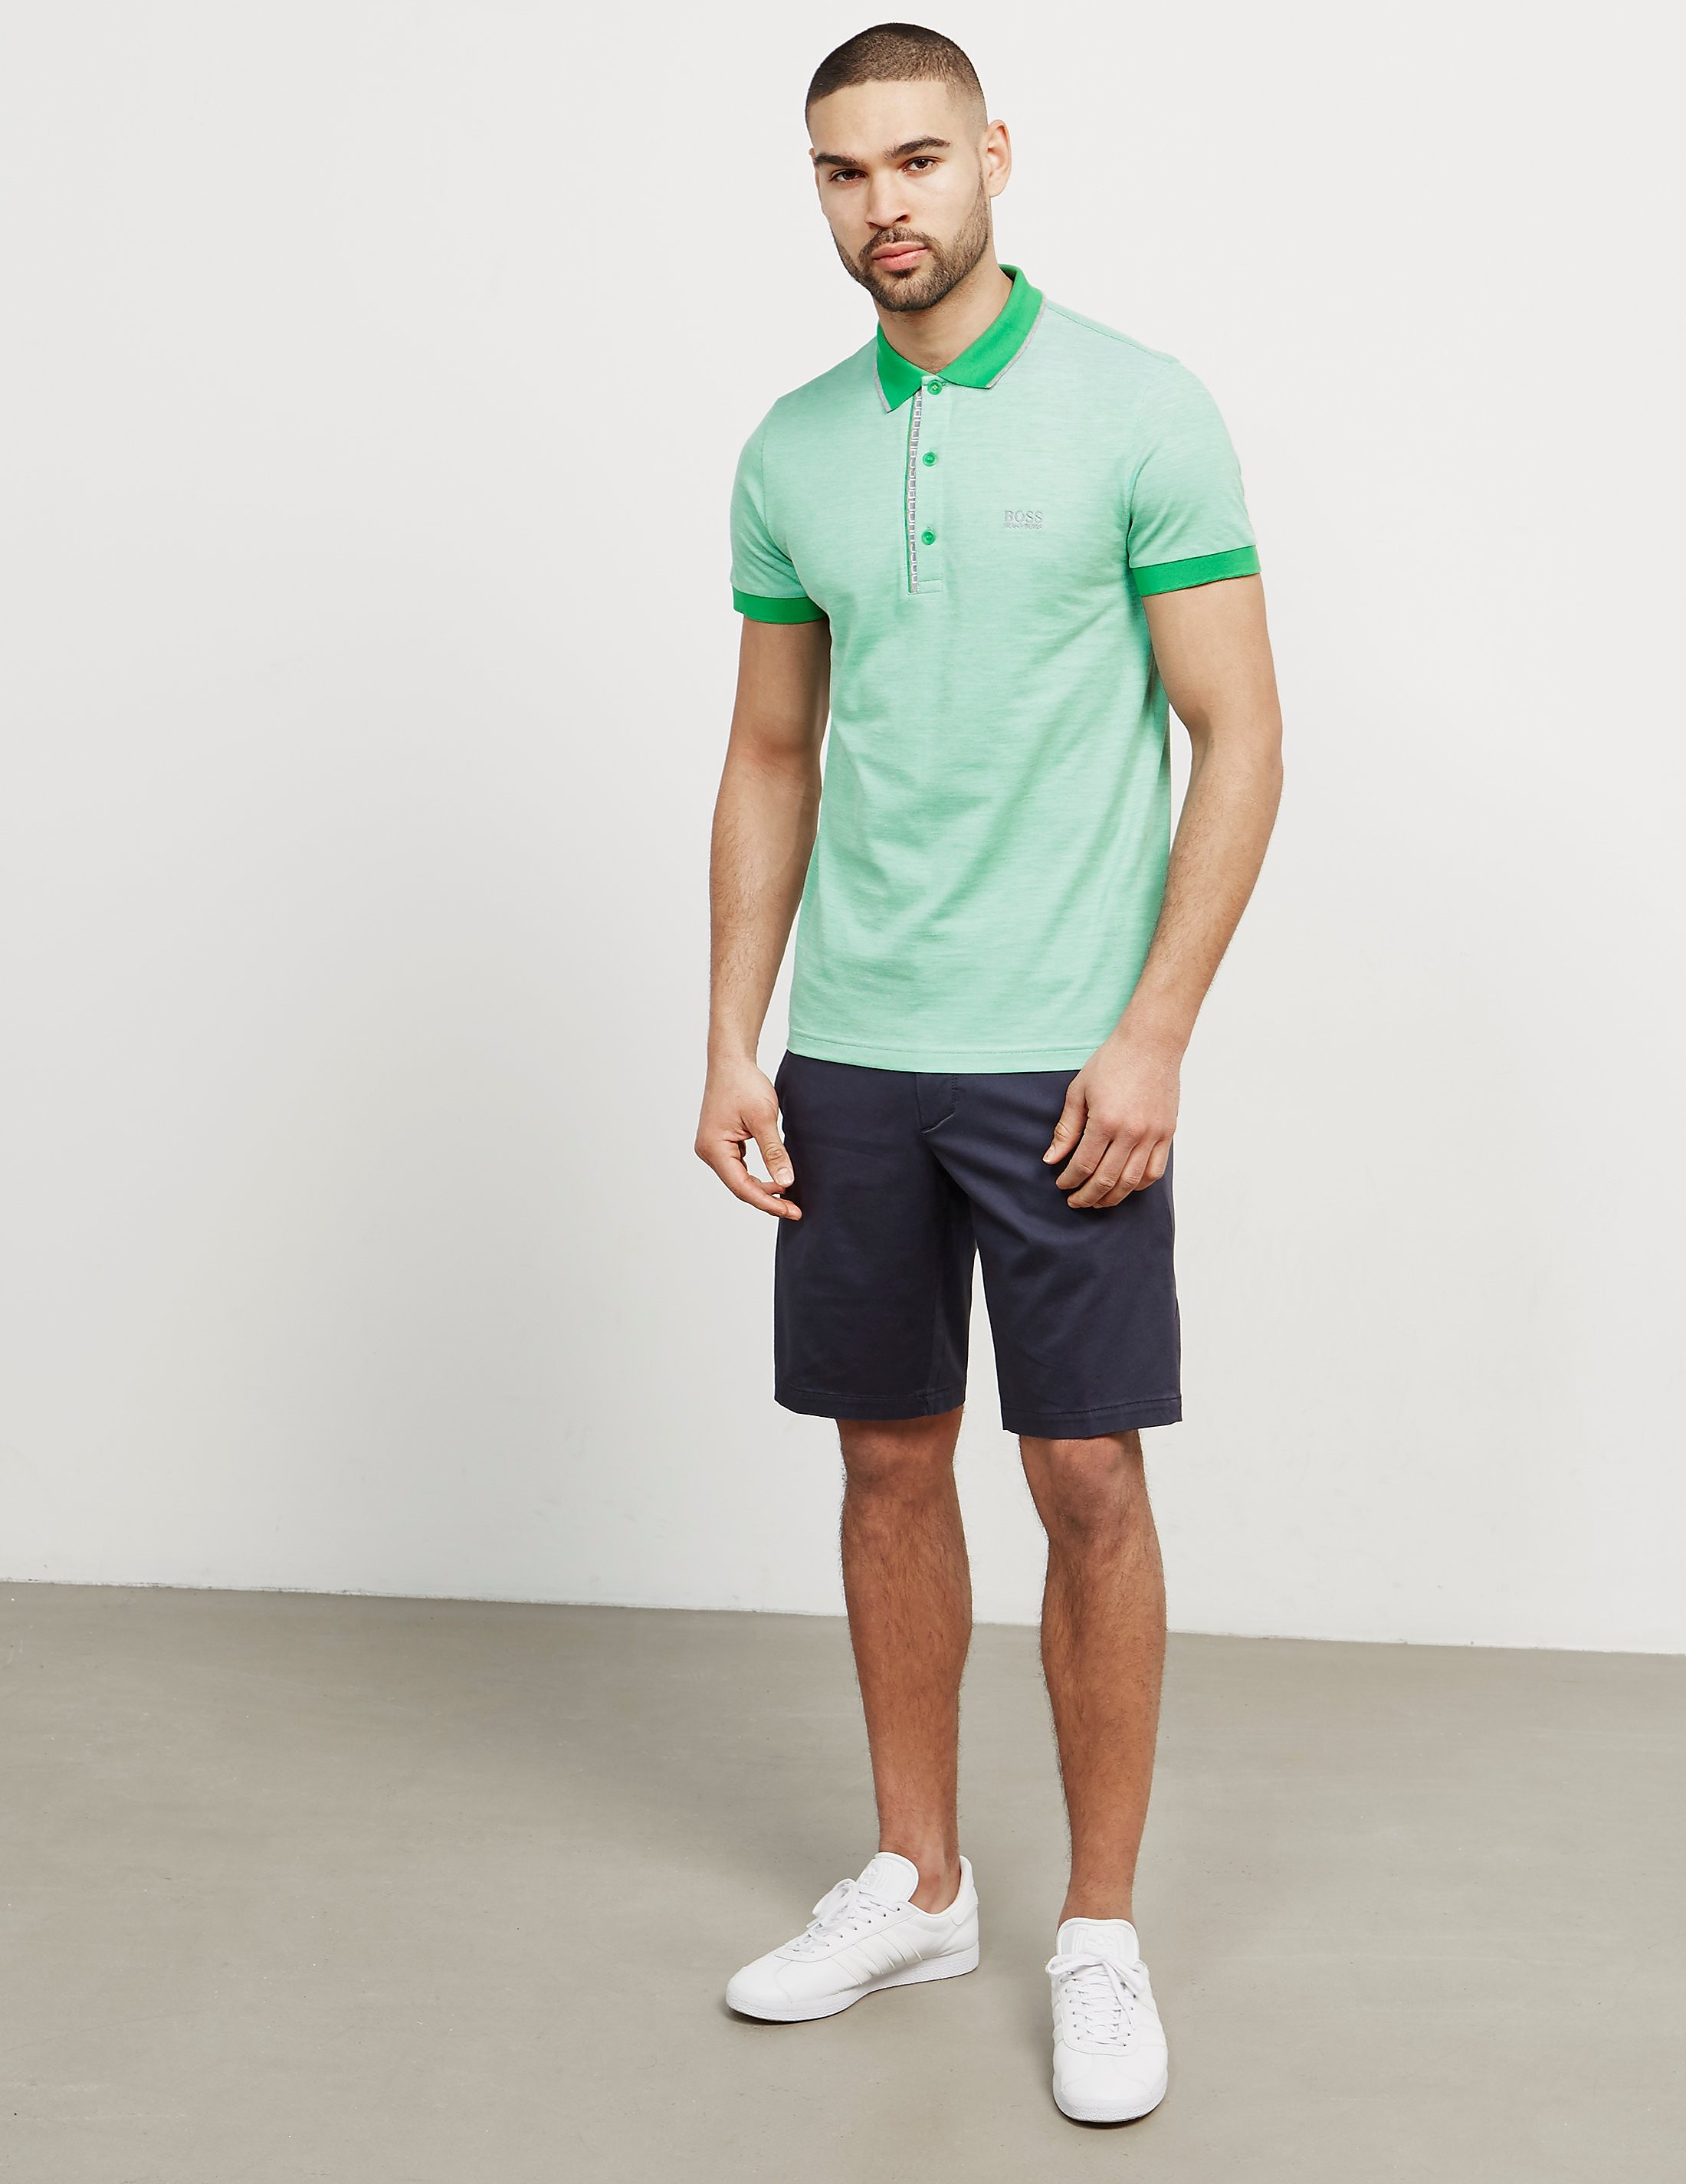 BOSS Green Paule4 Short Sleeve Polo Shirt